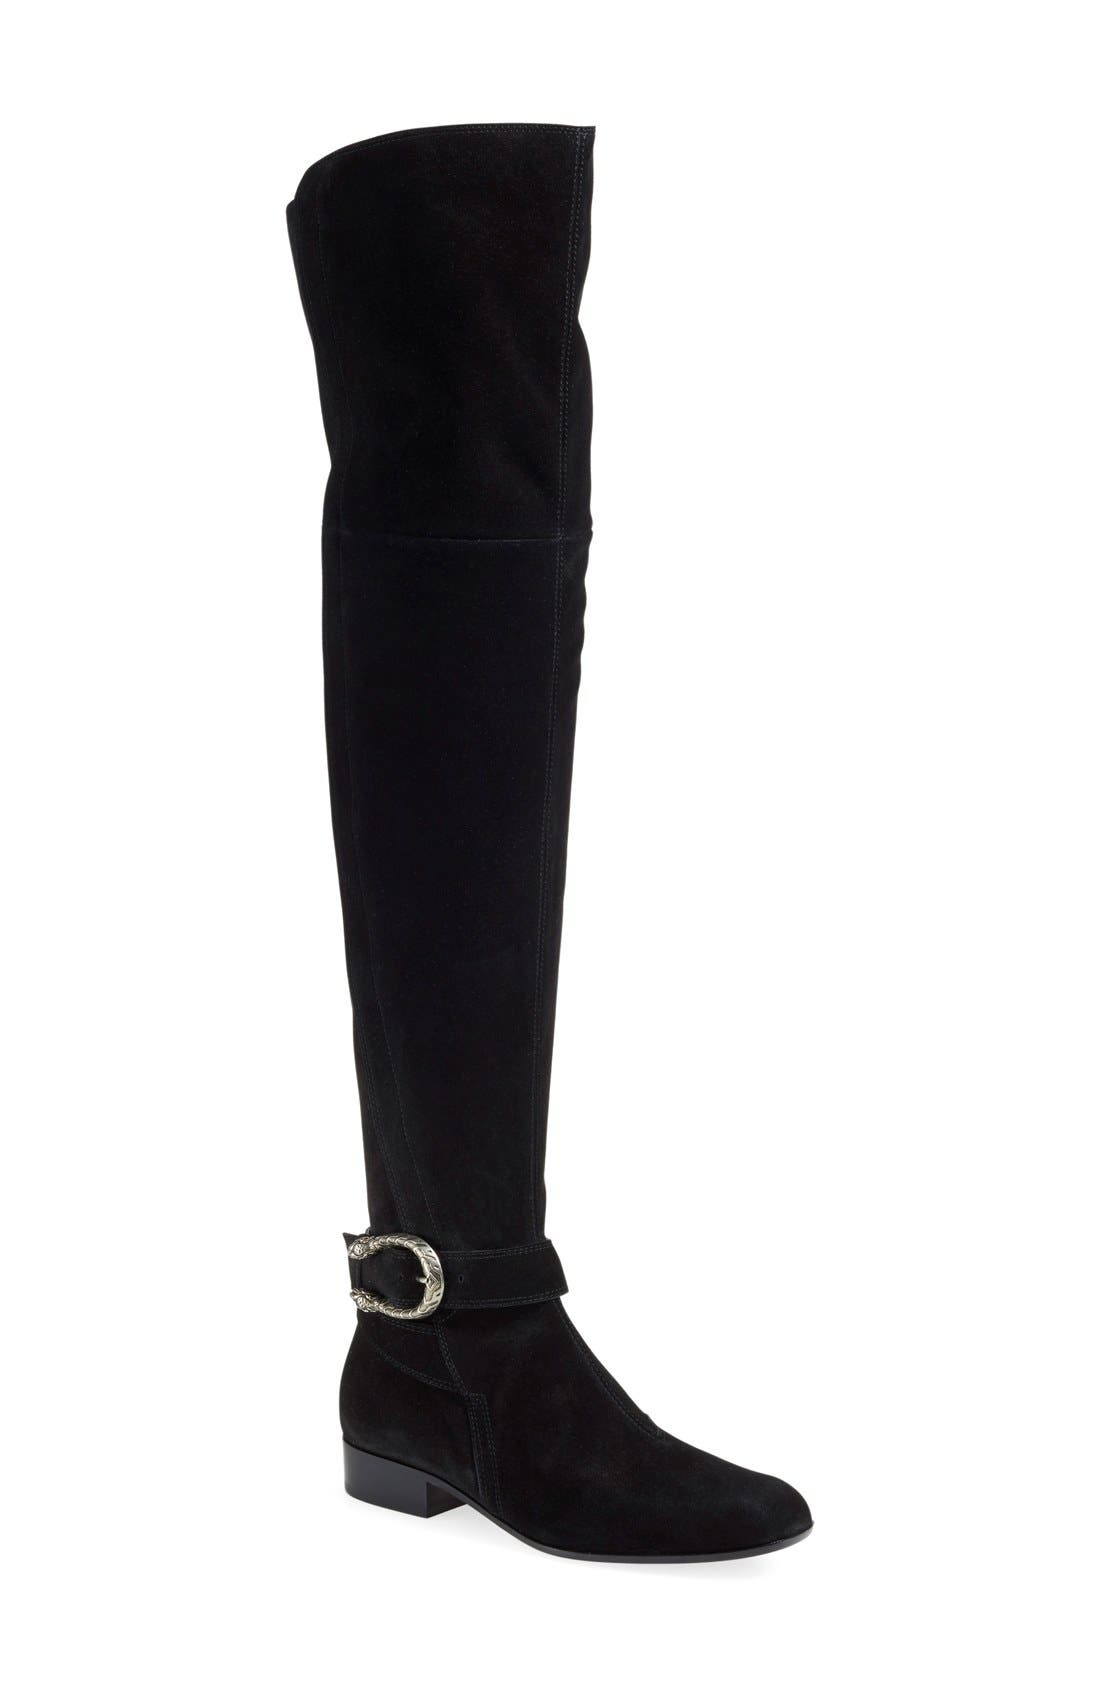 Alternate Image 1 Selected - Gucci 'Dionysus' Over the Knee Boot (Women)